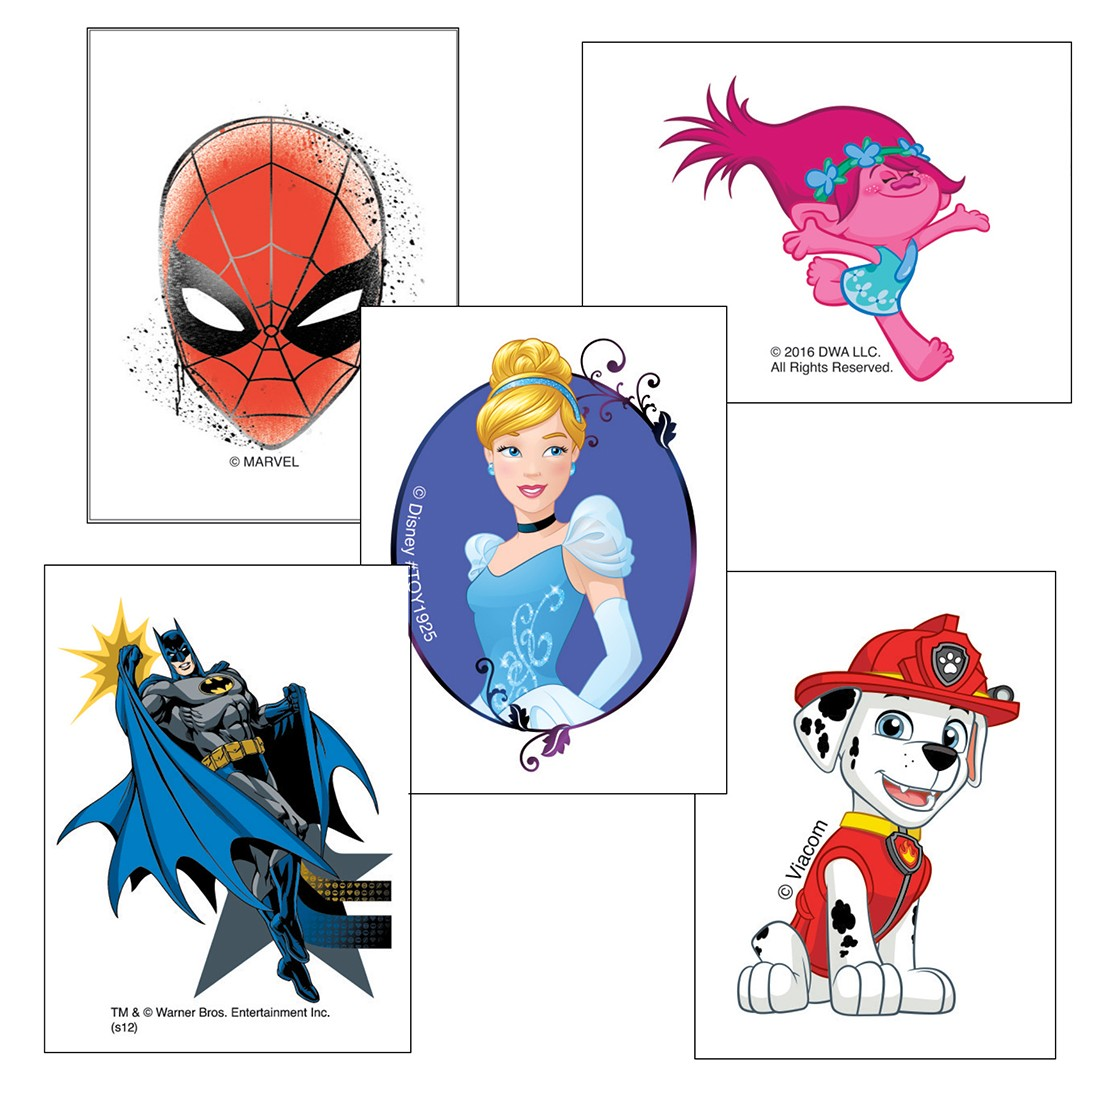 Character Temporary Tattoos Value Pack [image]